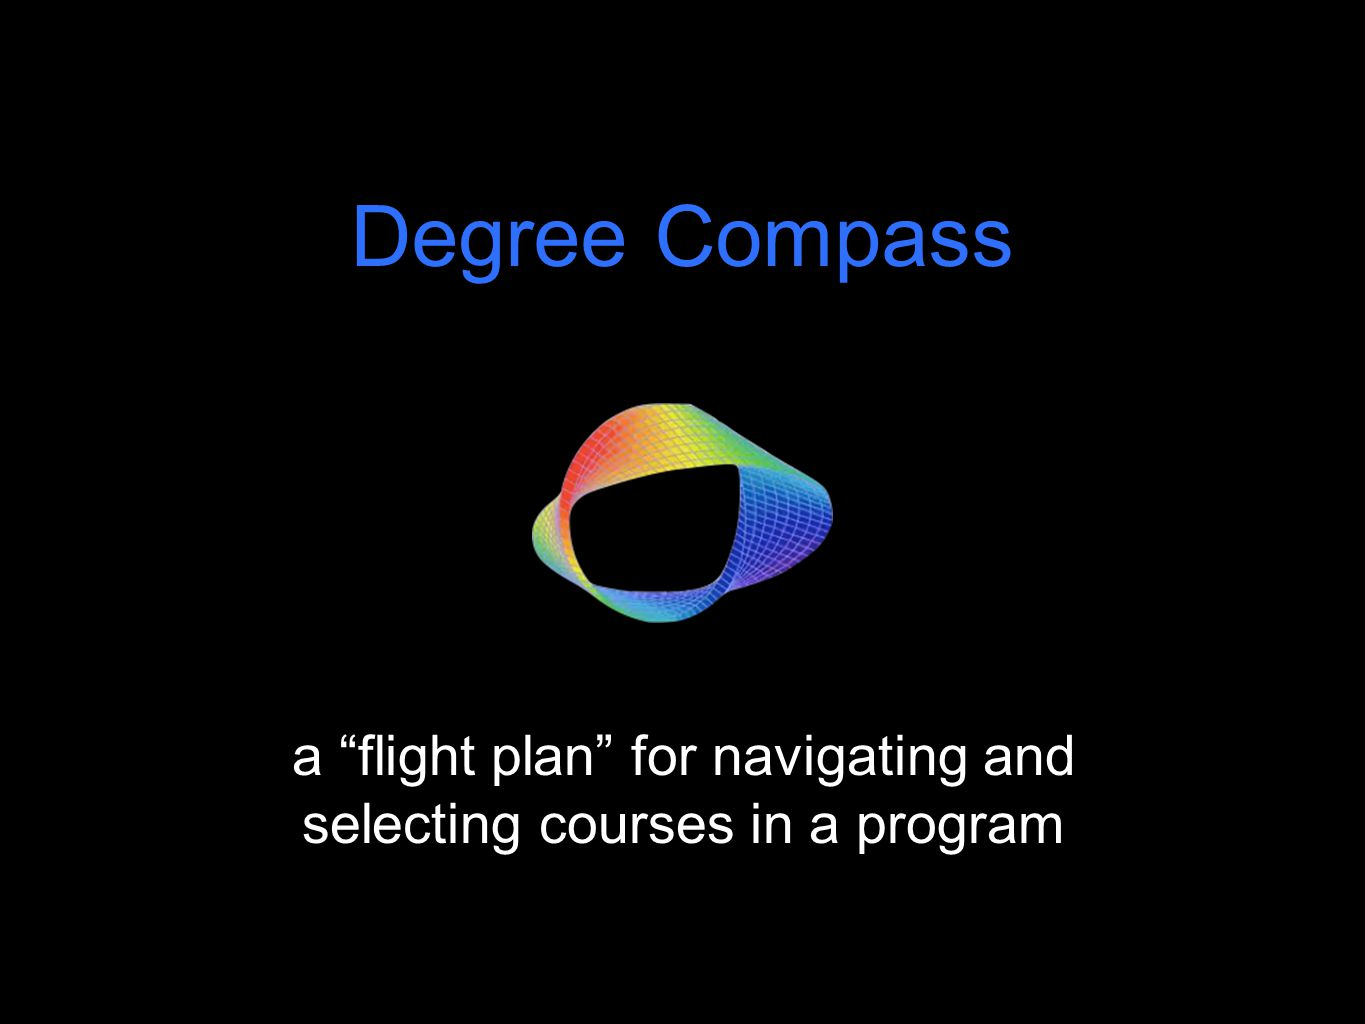 a flight plan for navigating and selecting courses in a program Degree Compass